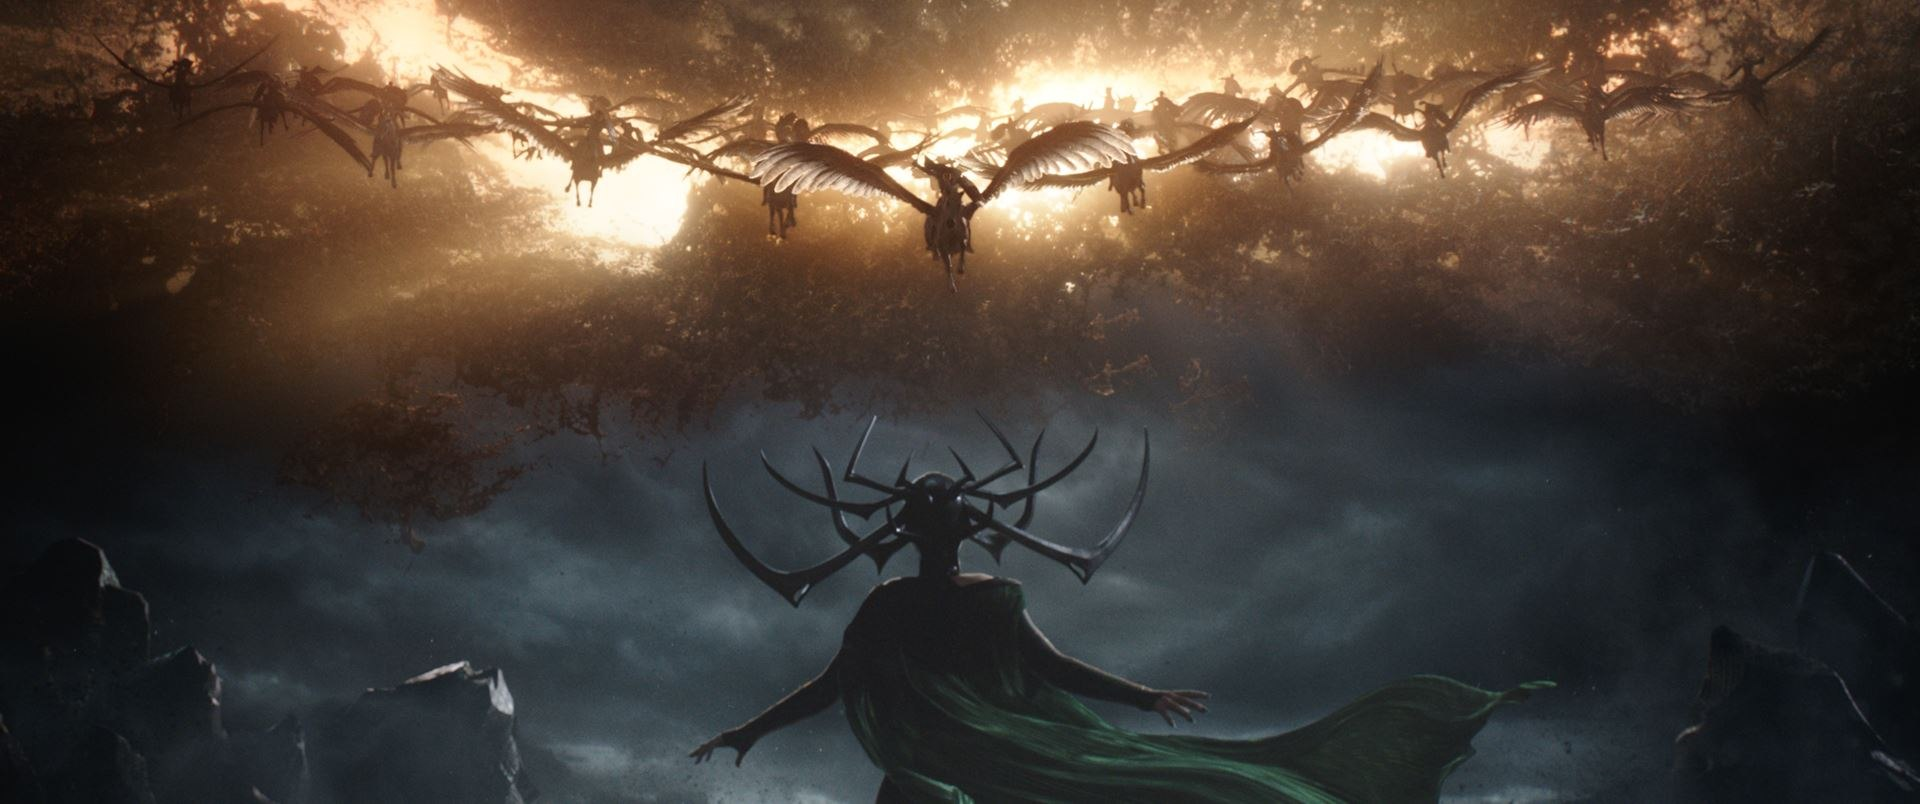 Rising Sun Pictures Hammers Out Visual Effects For Thor